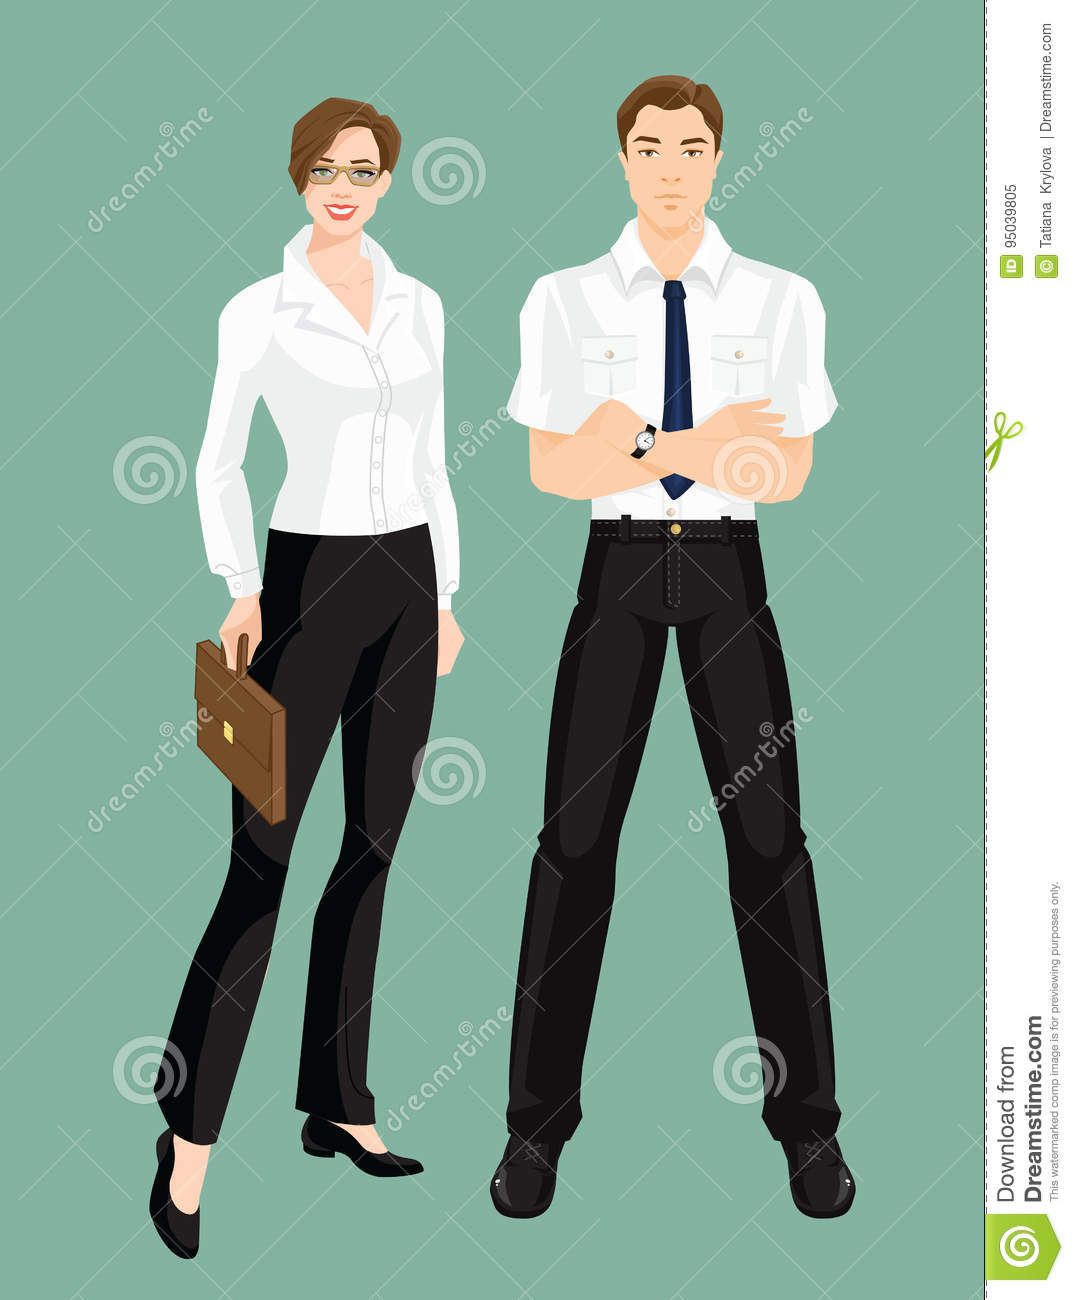 Vector Illustration Of Corporate Dress Code Stock Vector